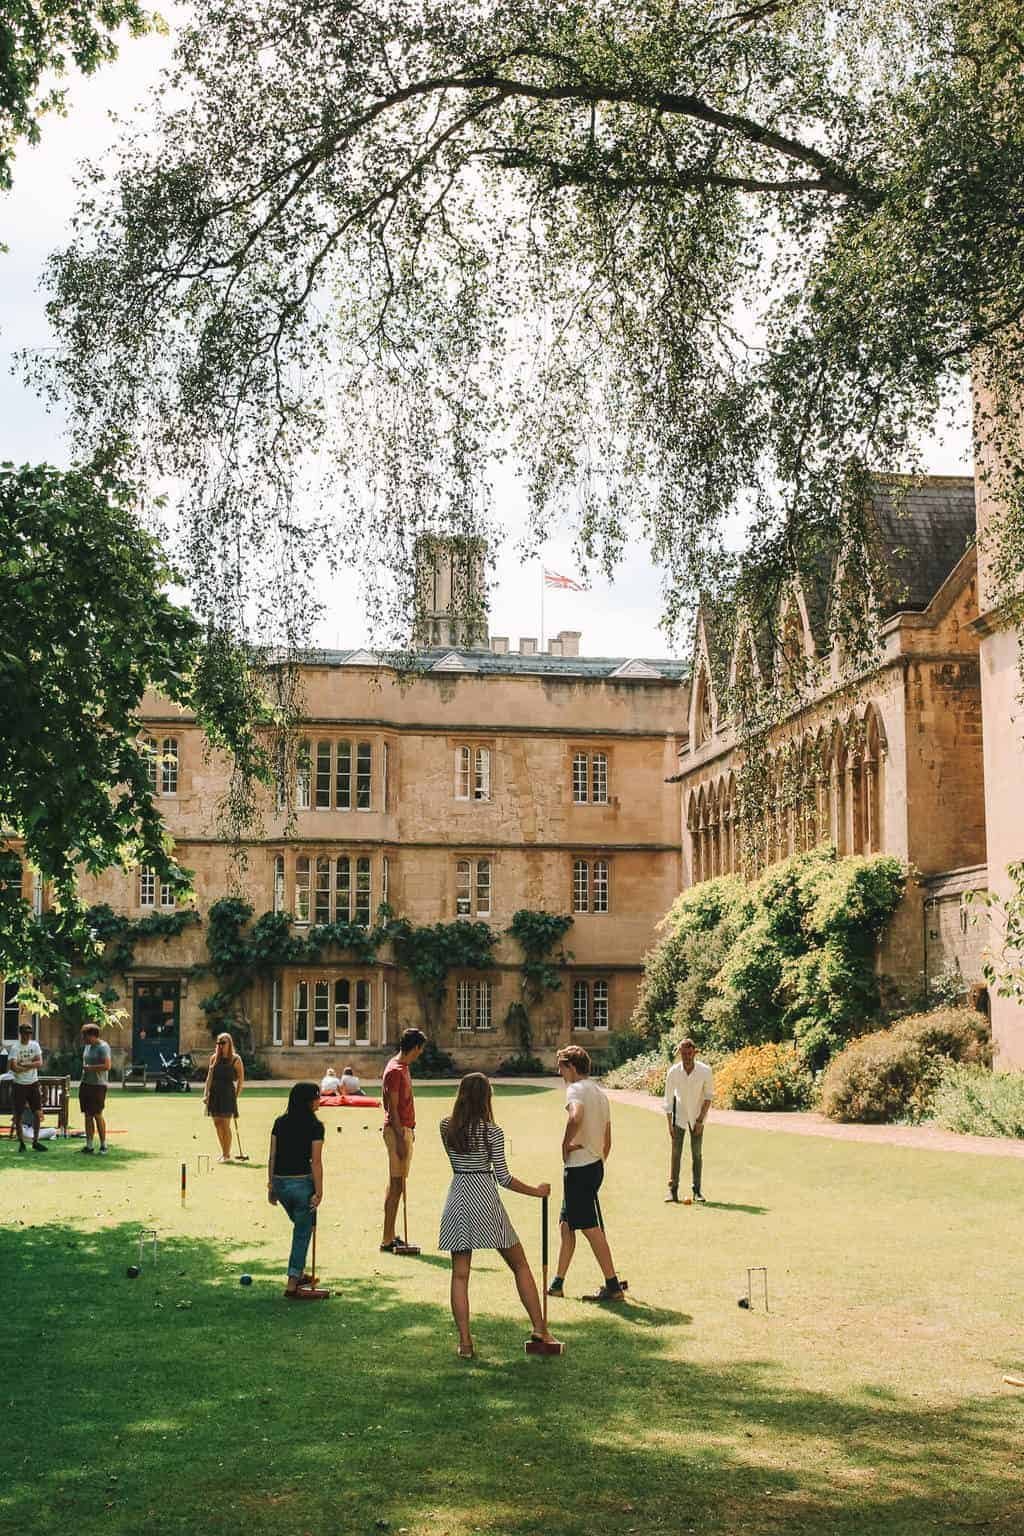 Exeter College - 10 Most Beautiful Colleges at Oxford University According to a Student